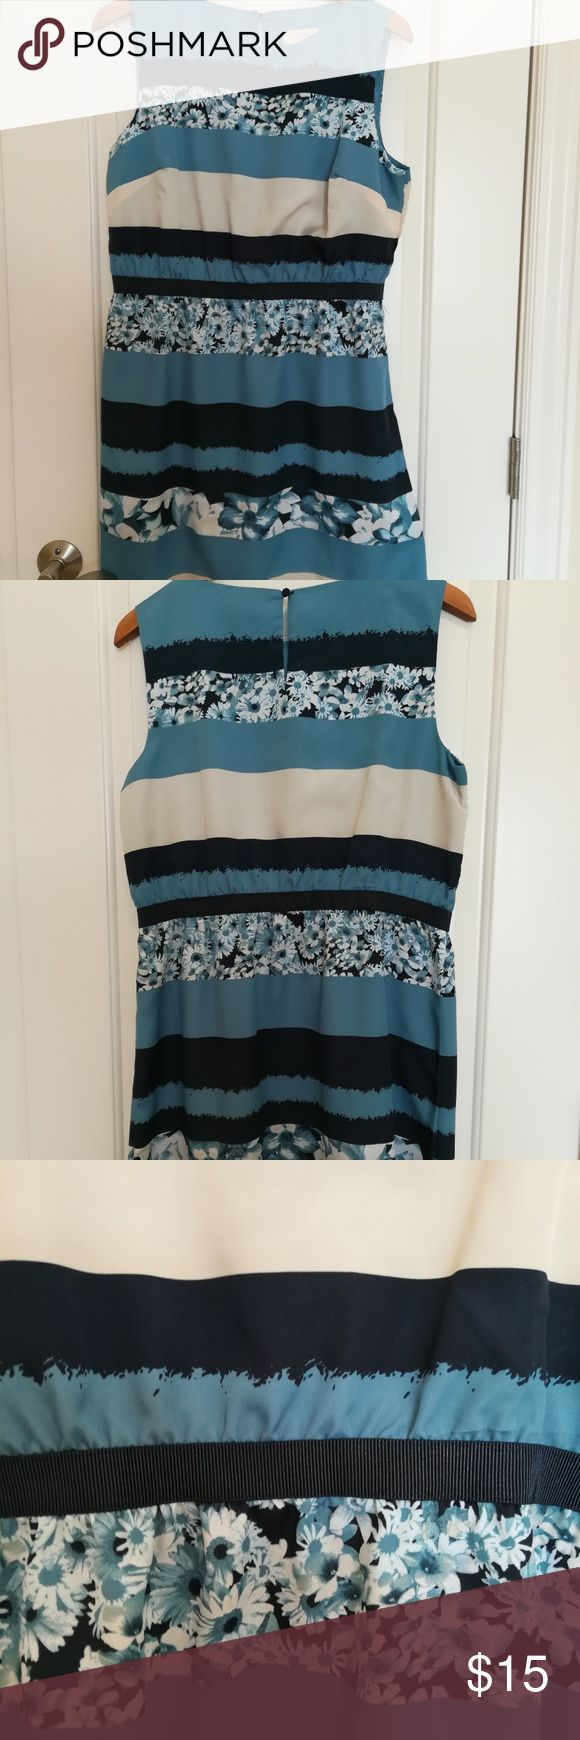 Loft Blue Strip with Floral Shift Dress Navy, cream and light blue stripes with floral. Great dress for spring and summer. The tag indicating what kind of fabric is missing. It has  silky feel to it. Gros grain ribbon waistline. Pre-owned good condition.  This is a petite dress size large length 34 inches LOFT Dresses Mini